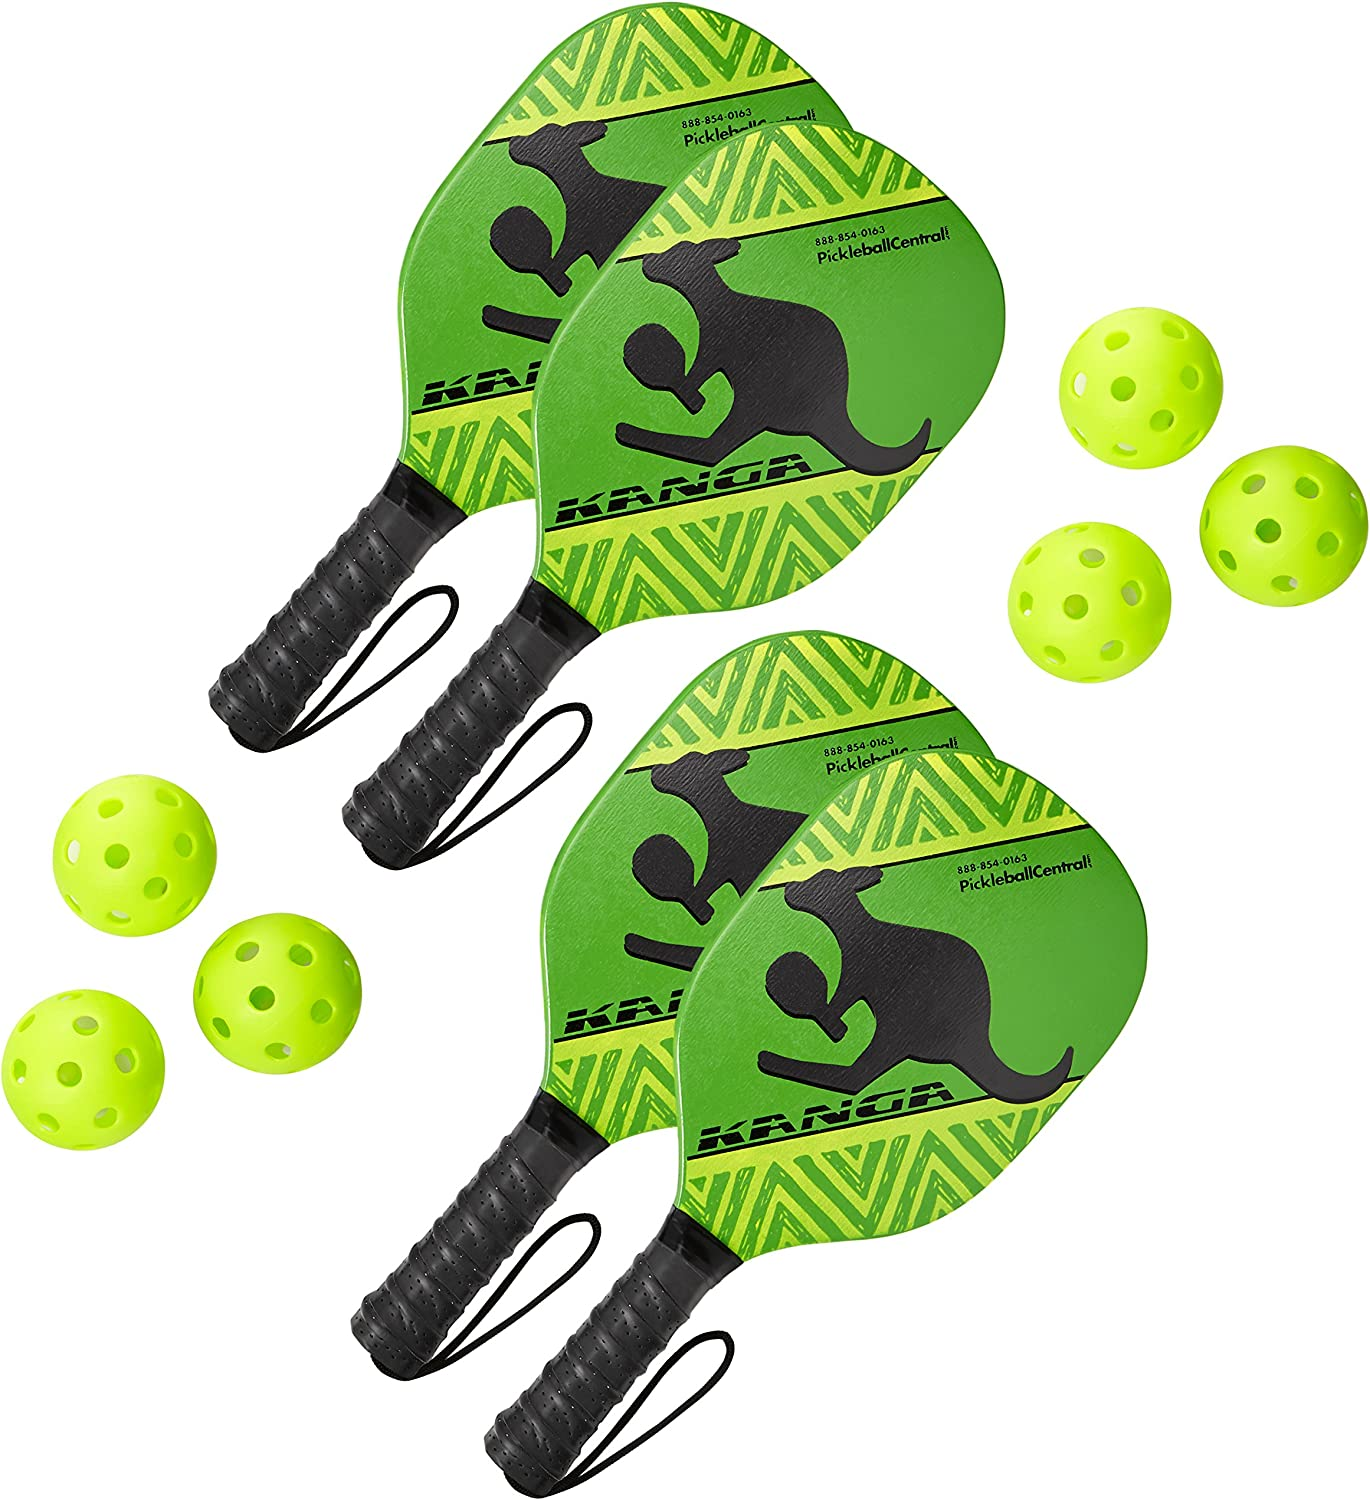 Kanga Beginner Pickleball Paddle Bundle | Set Includes 4 Pickleball Paddles/6 Pickleball Balls | Durable Wood Paddle Construction with Comfort Cushion Grip : Sports & Outdoors